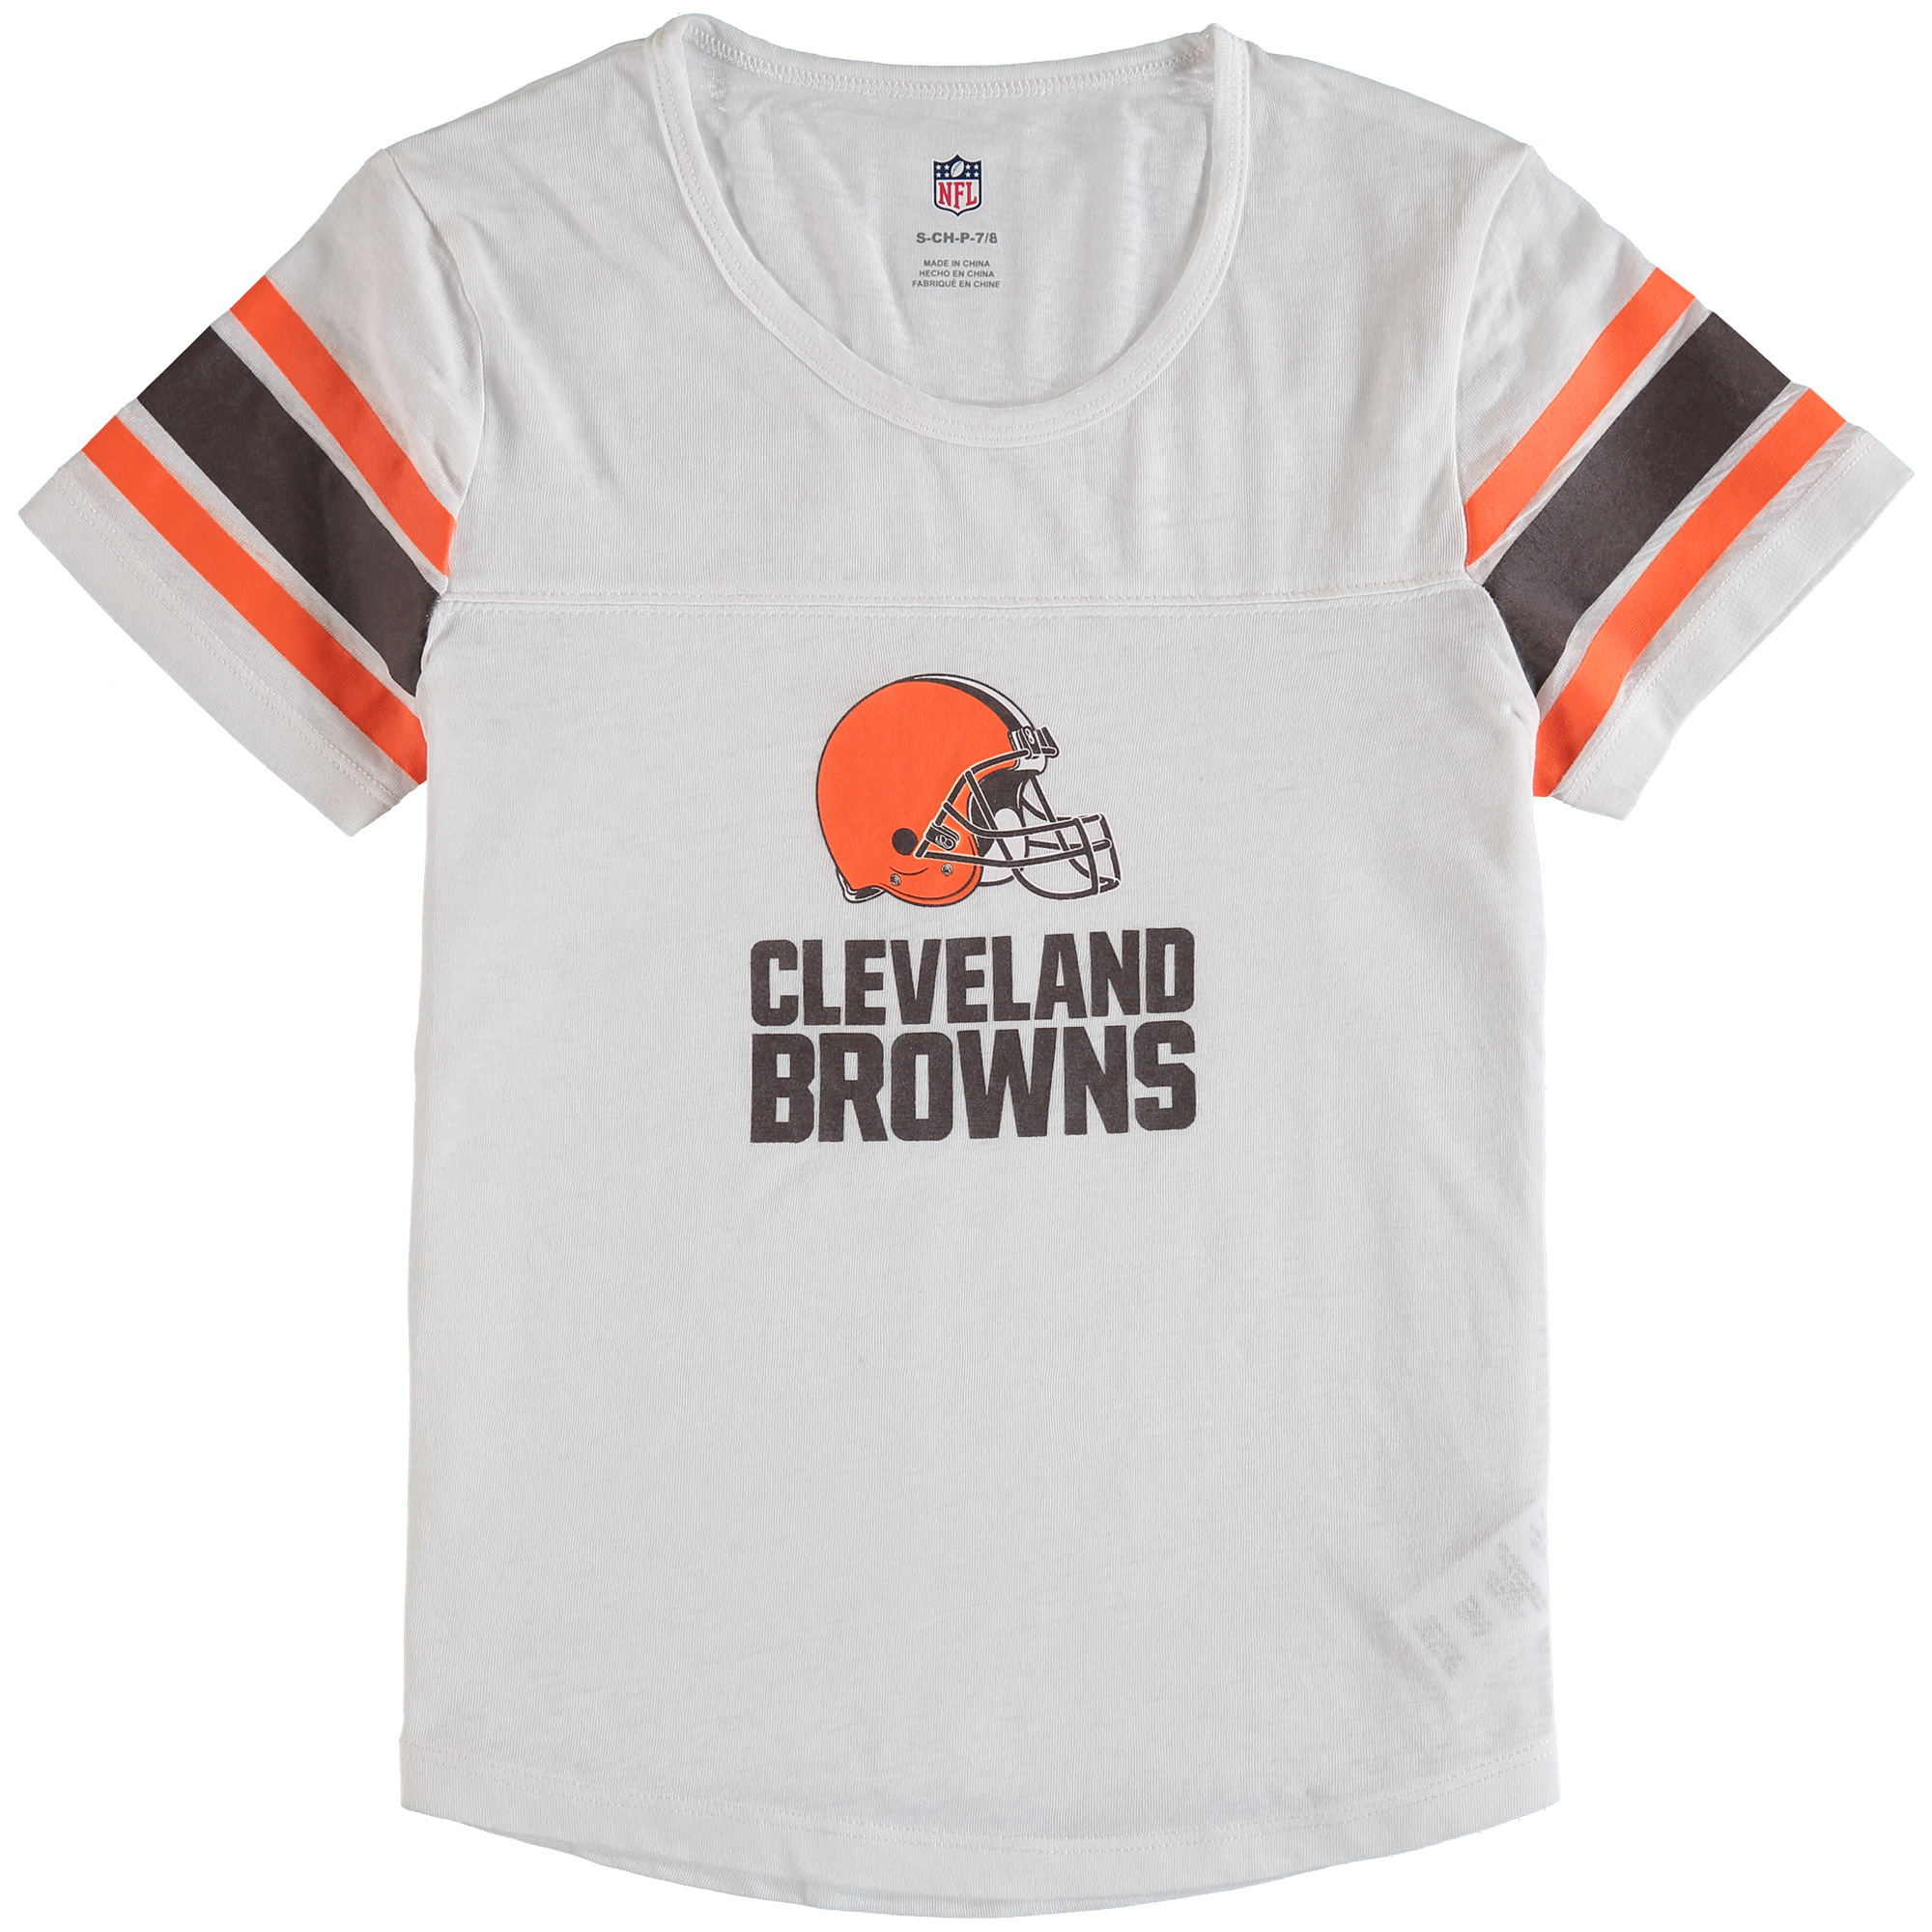 Cleveland Browns Girls Youth Team Pride Burnout Short Sleeve T-Shirt - White